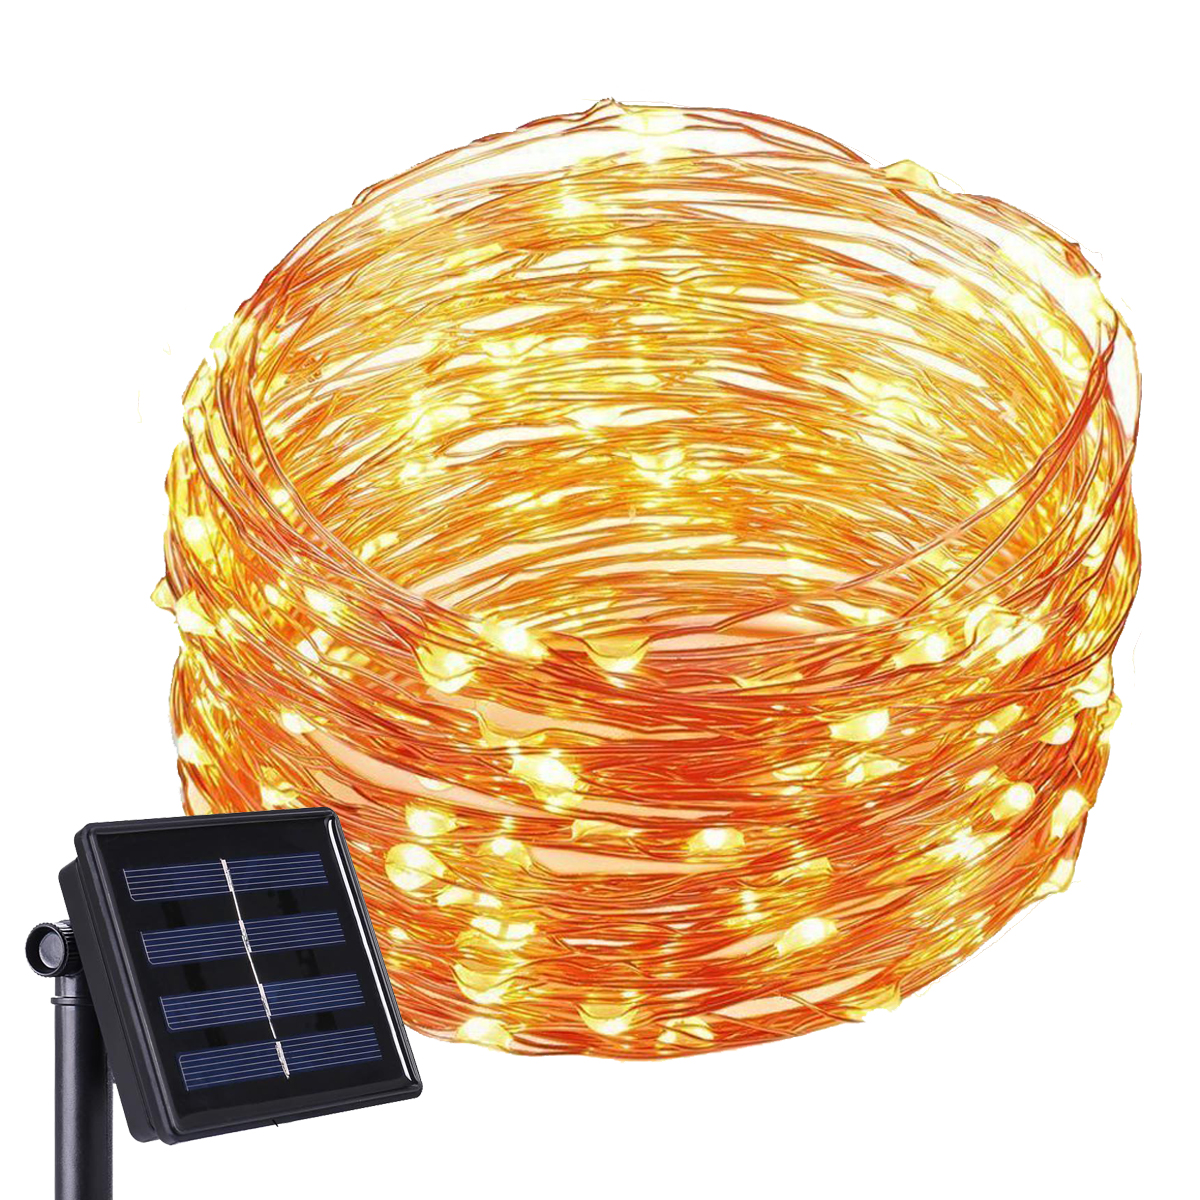 Kohree Solar Powered String Lights 120 LED 20FT Copper Wire Starry String Light Indoor Outdoor Waterproof Decoration